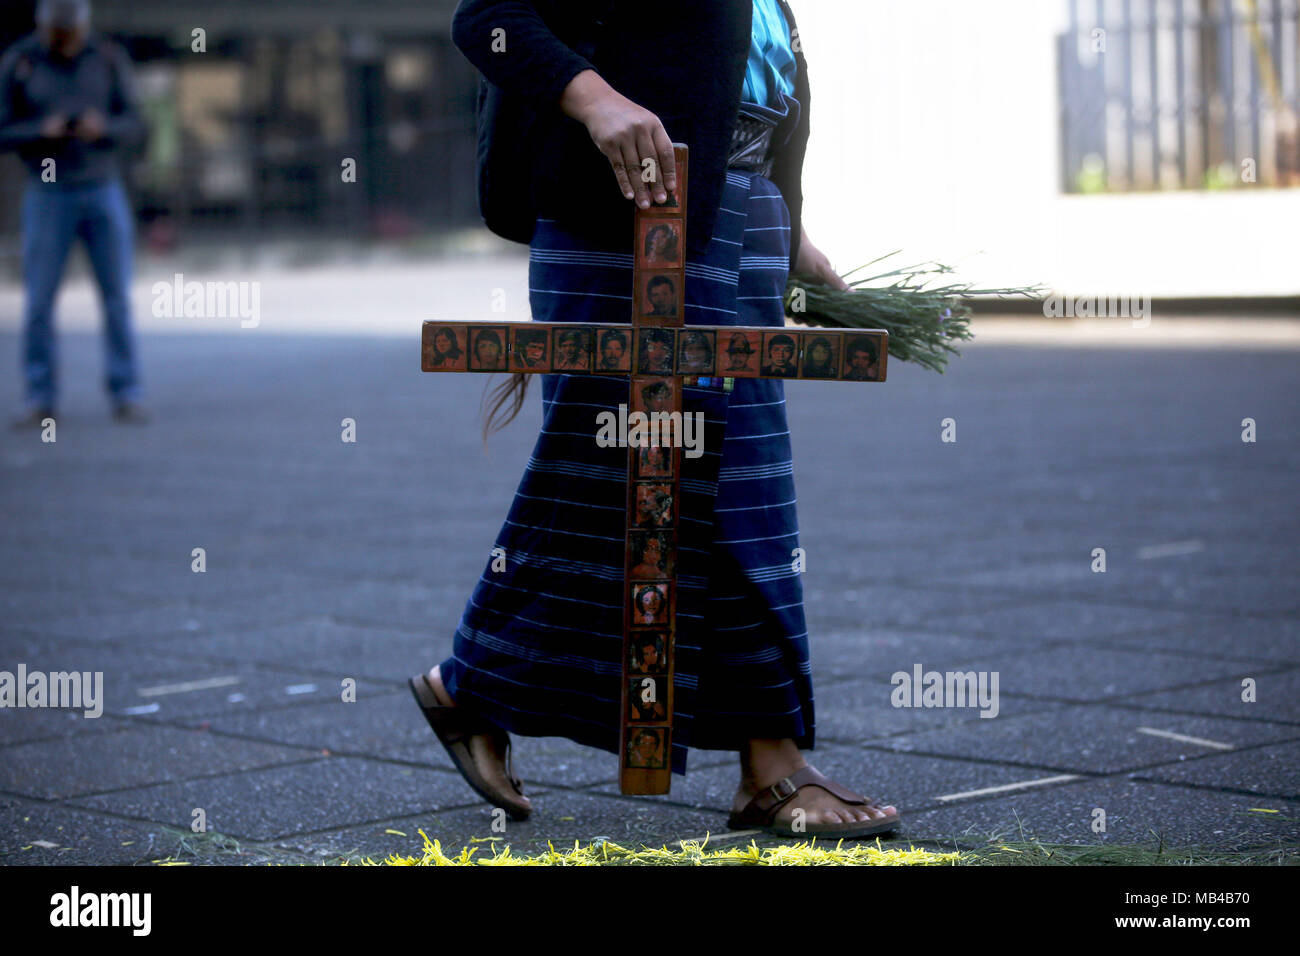 A woman holds a wooden cross with the portraits of victims of the dictatorship at an altar in Guatemala City, Guatemala, 06 April 2018. Civil organizations and relatives of the victims of the internal armed conflict during the government of Jose Efrain Rios Montt payed tribute to the victims of the ixil genocide at the Palace of Justice. The court in charge of the case decided to close the criminal process against the former dictator, who died past Sunday at the age of 91, and to give the families an economic compensarion of 67,567 dollars. EFE/Esteban Biba - Stock Image